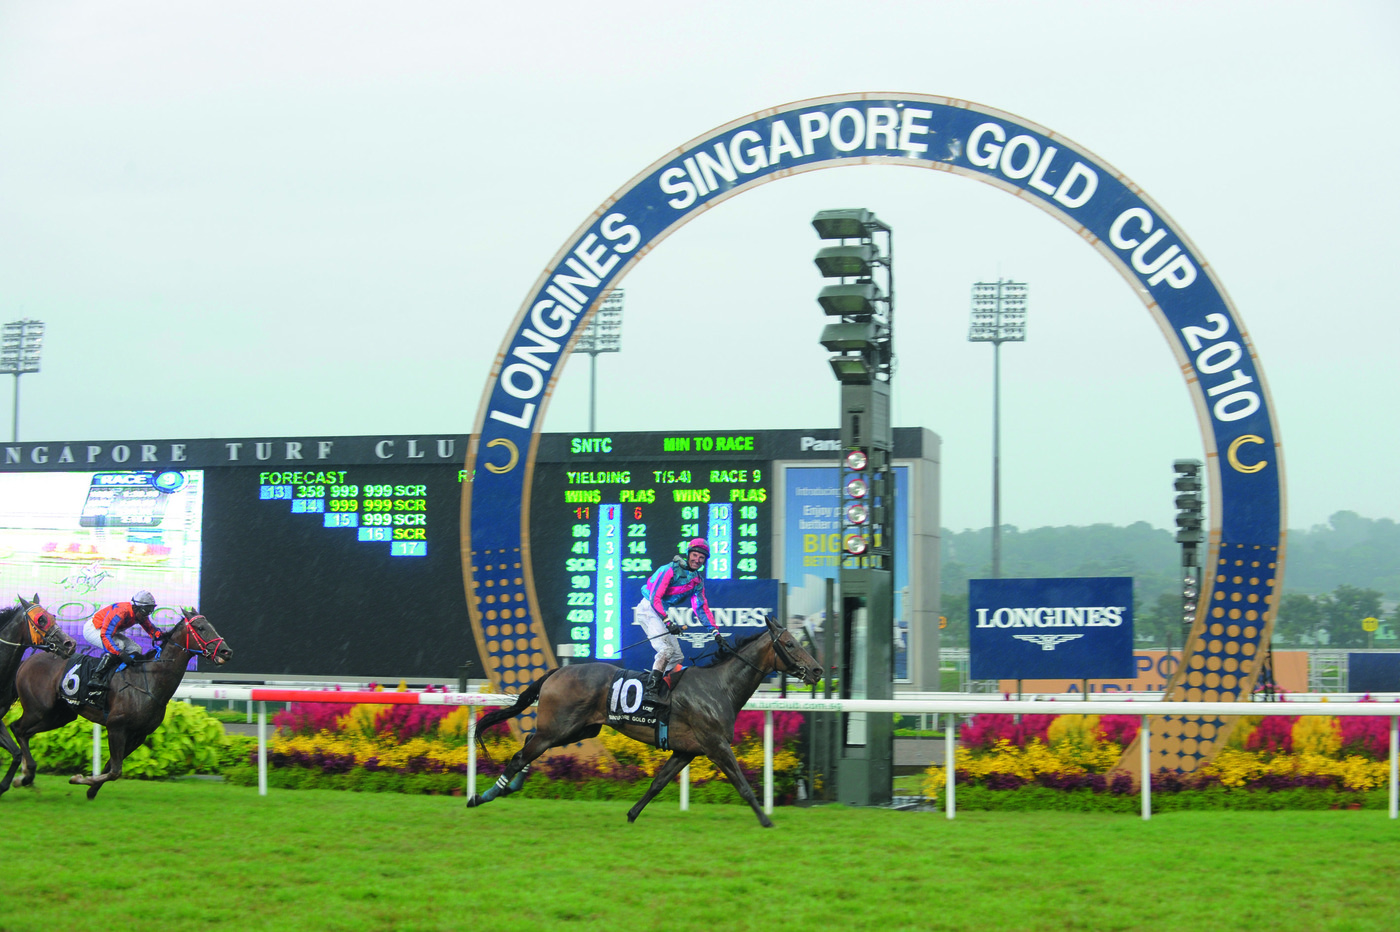 Longines Flat Racing Event: Longines embarks on landmark partnership with the Singapore Turf Club and launches the Longines Singapore Gold Cup 5